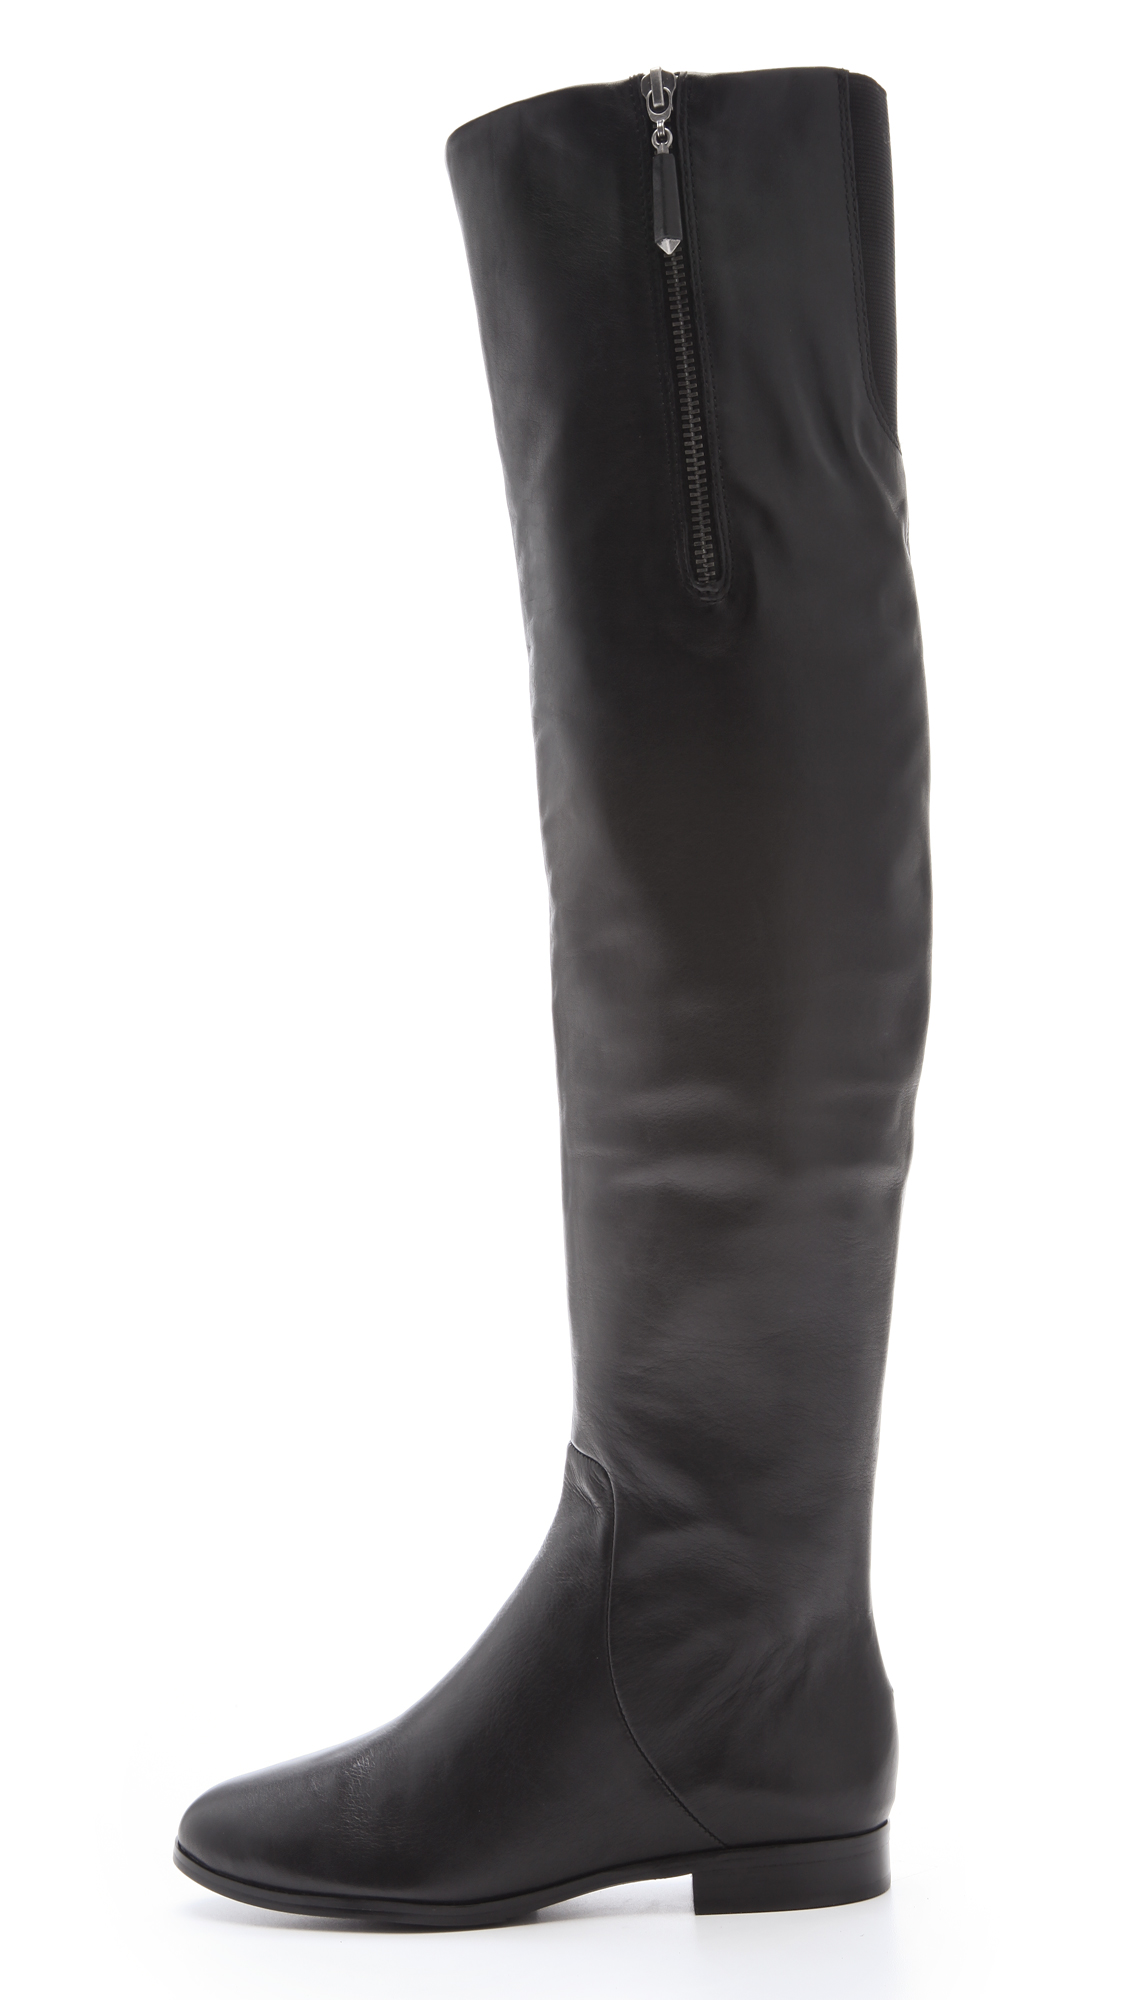 Juicy Couture Womens Morell Leather Closed Toe Over Knee Fashion Boots by Juicy Couture